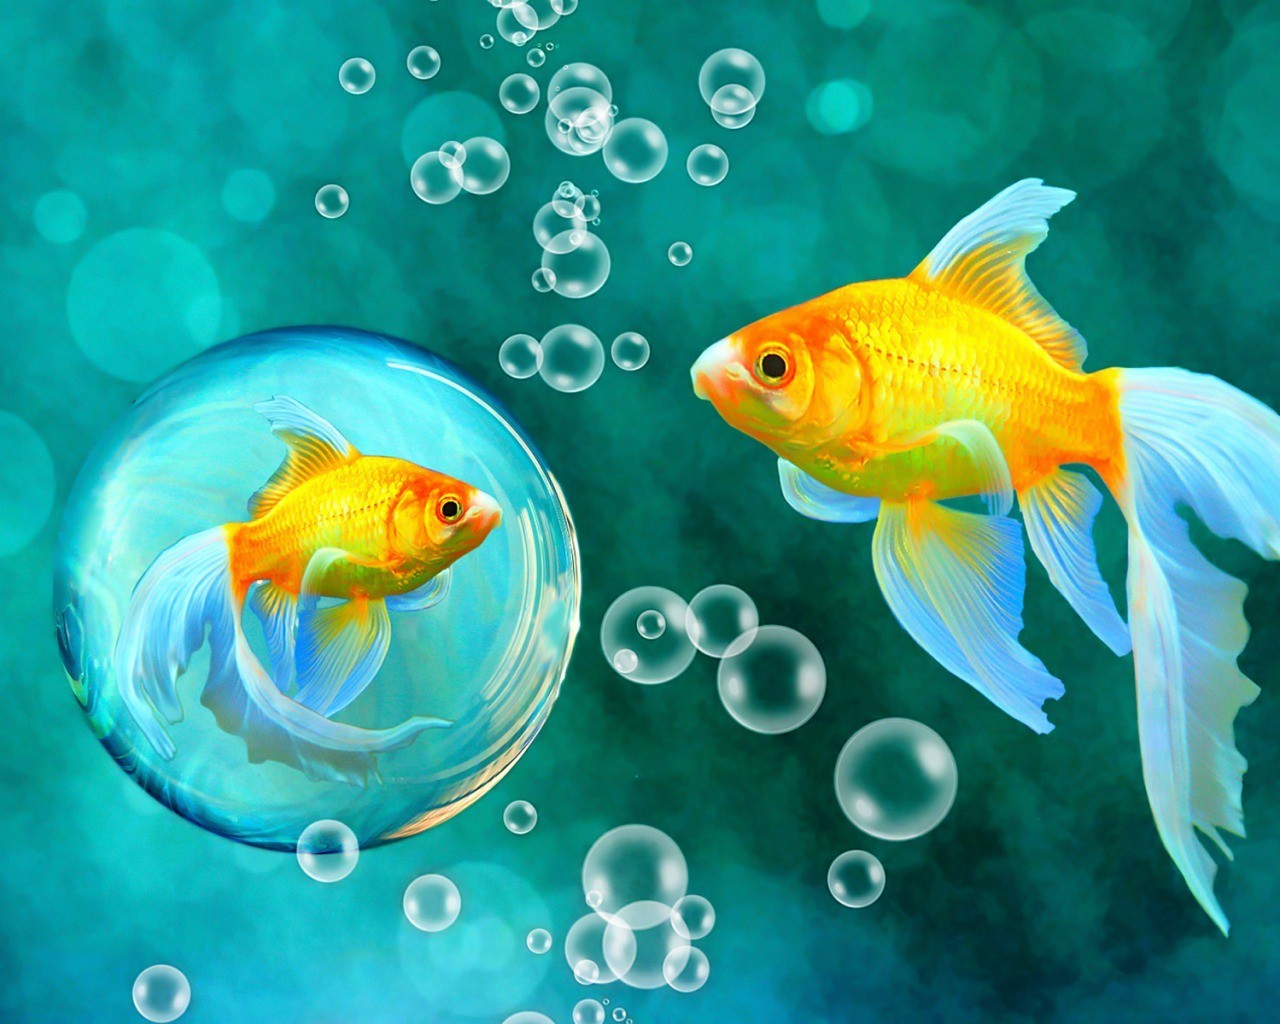 analysis of love song with two goldfish